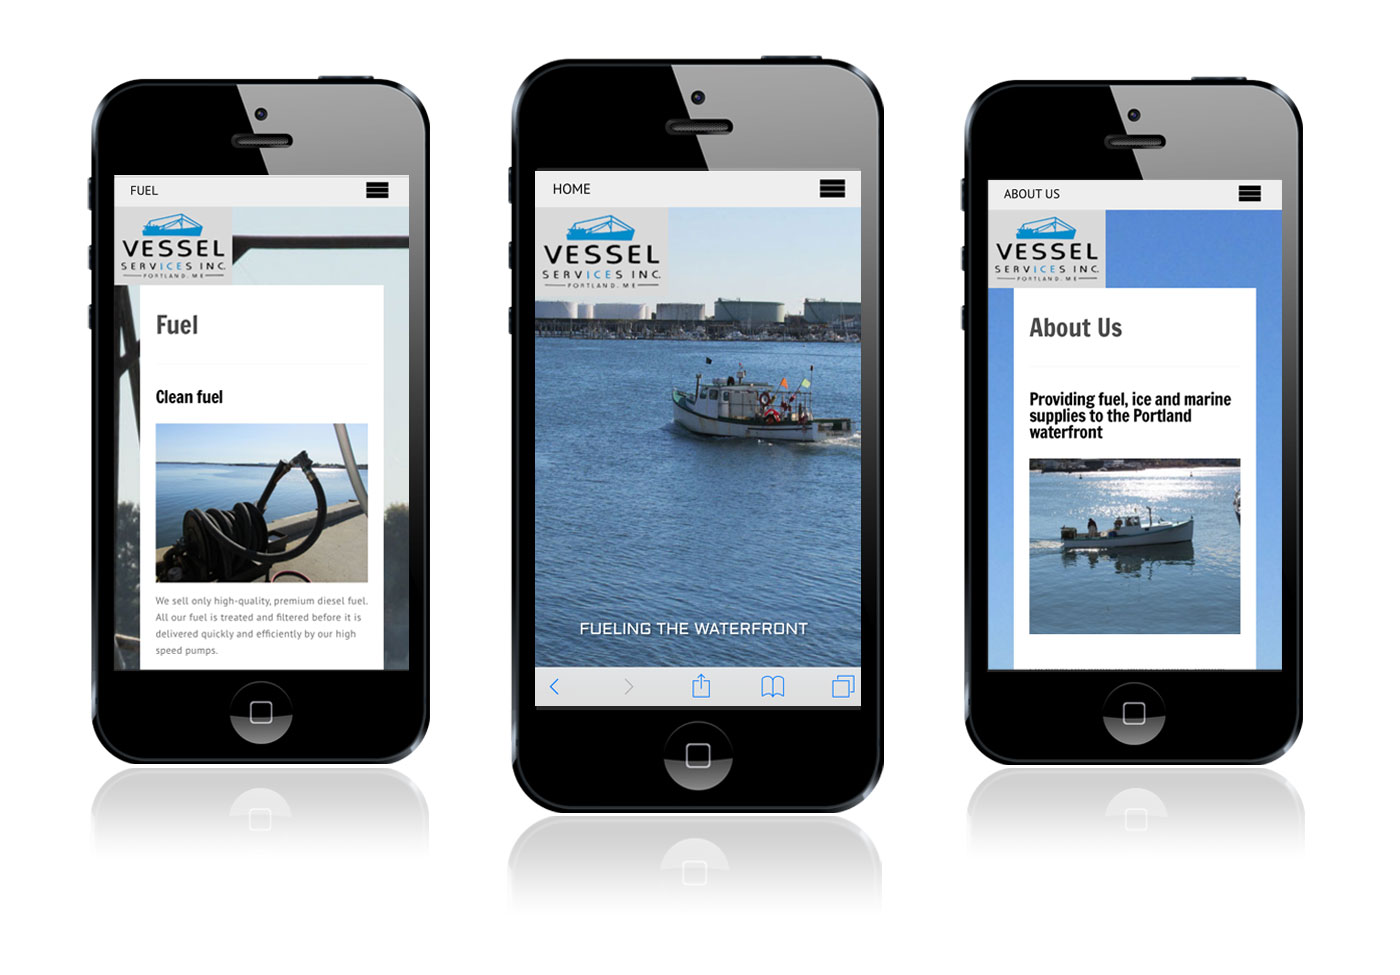 Wood and Company mobile website design for Vessel Services